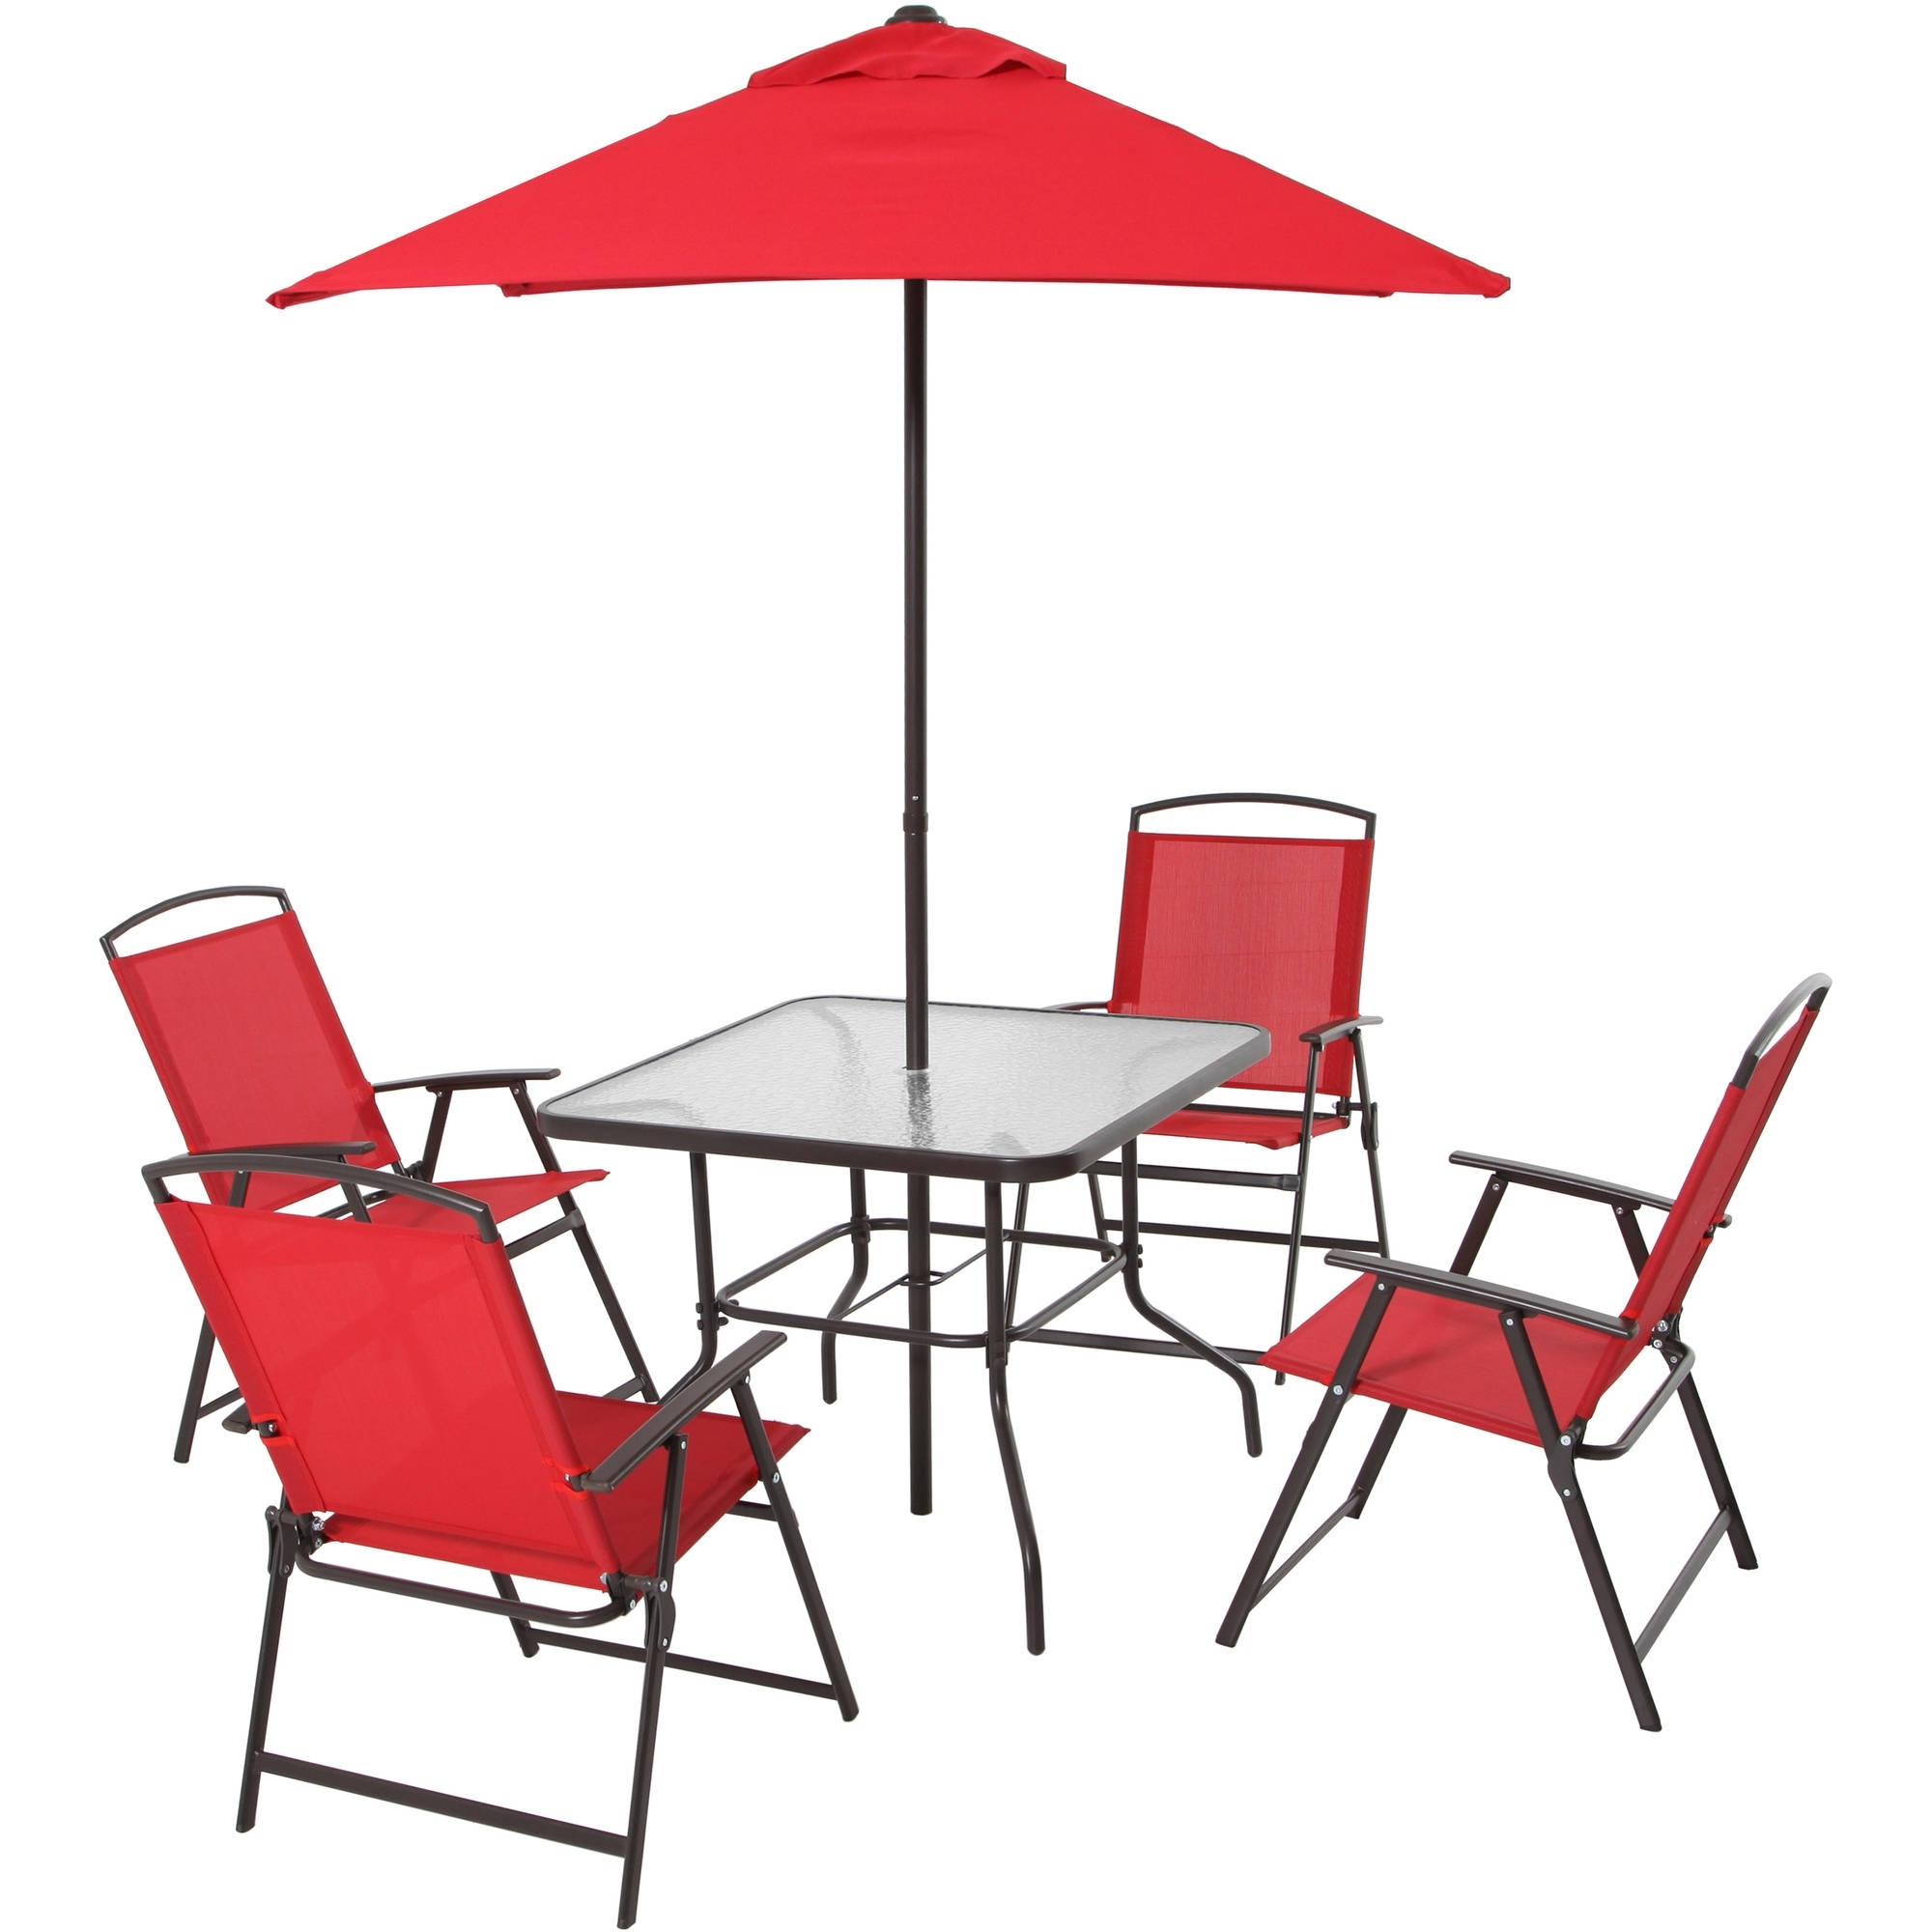 Widely Used Patio Dining Set Folding Chairs Outdoor Furniture Metal Frame With Outdoor Dining Table And Chairs Sets (View 24 of 25)